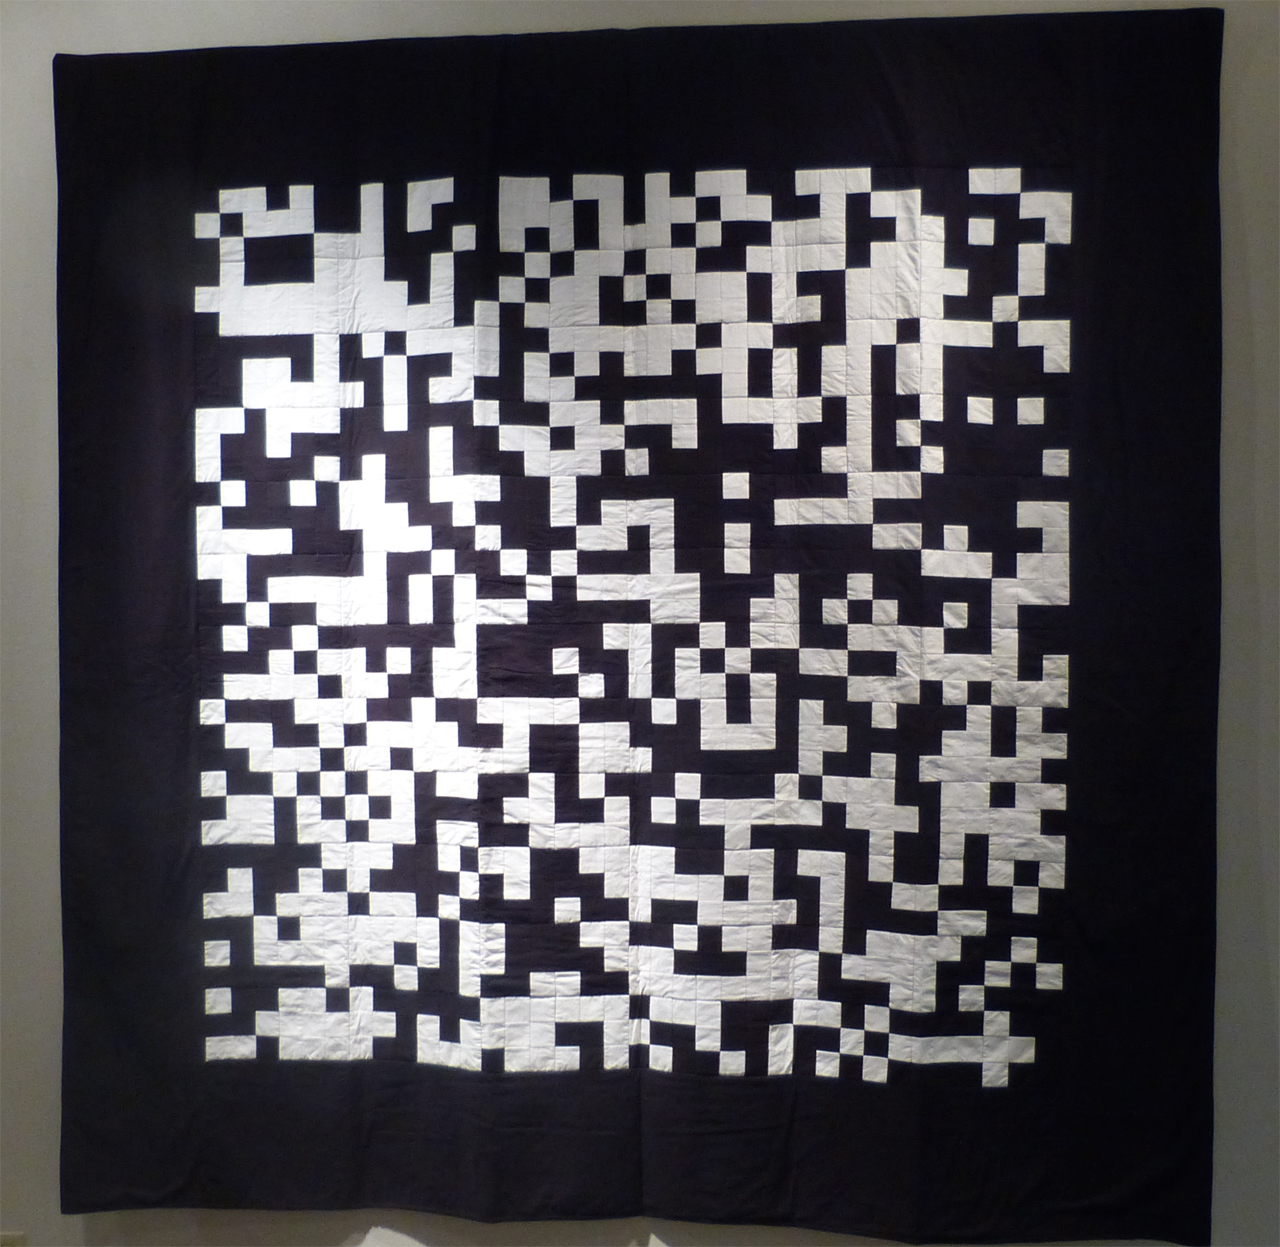 fig 5 John Sims, Pi in Black and White, 2008, 8' x 8', cotton, photograph courtesy of John Sims